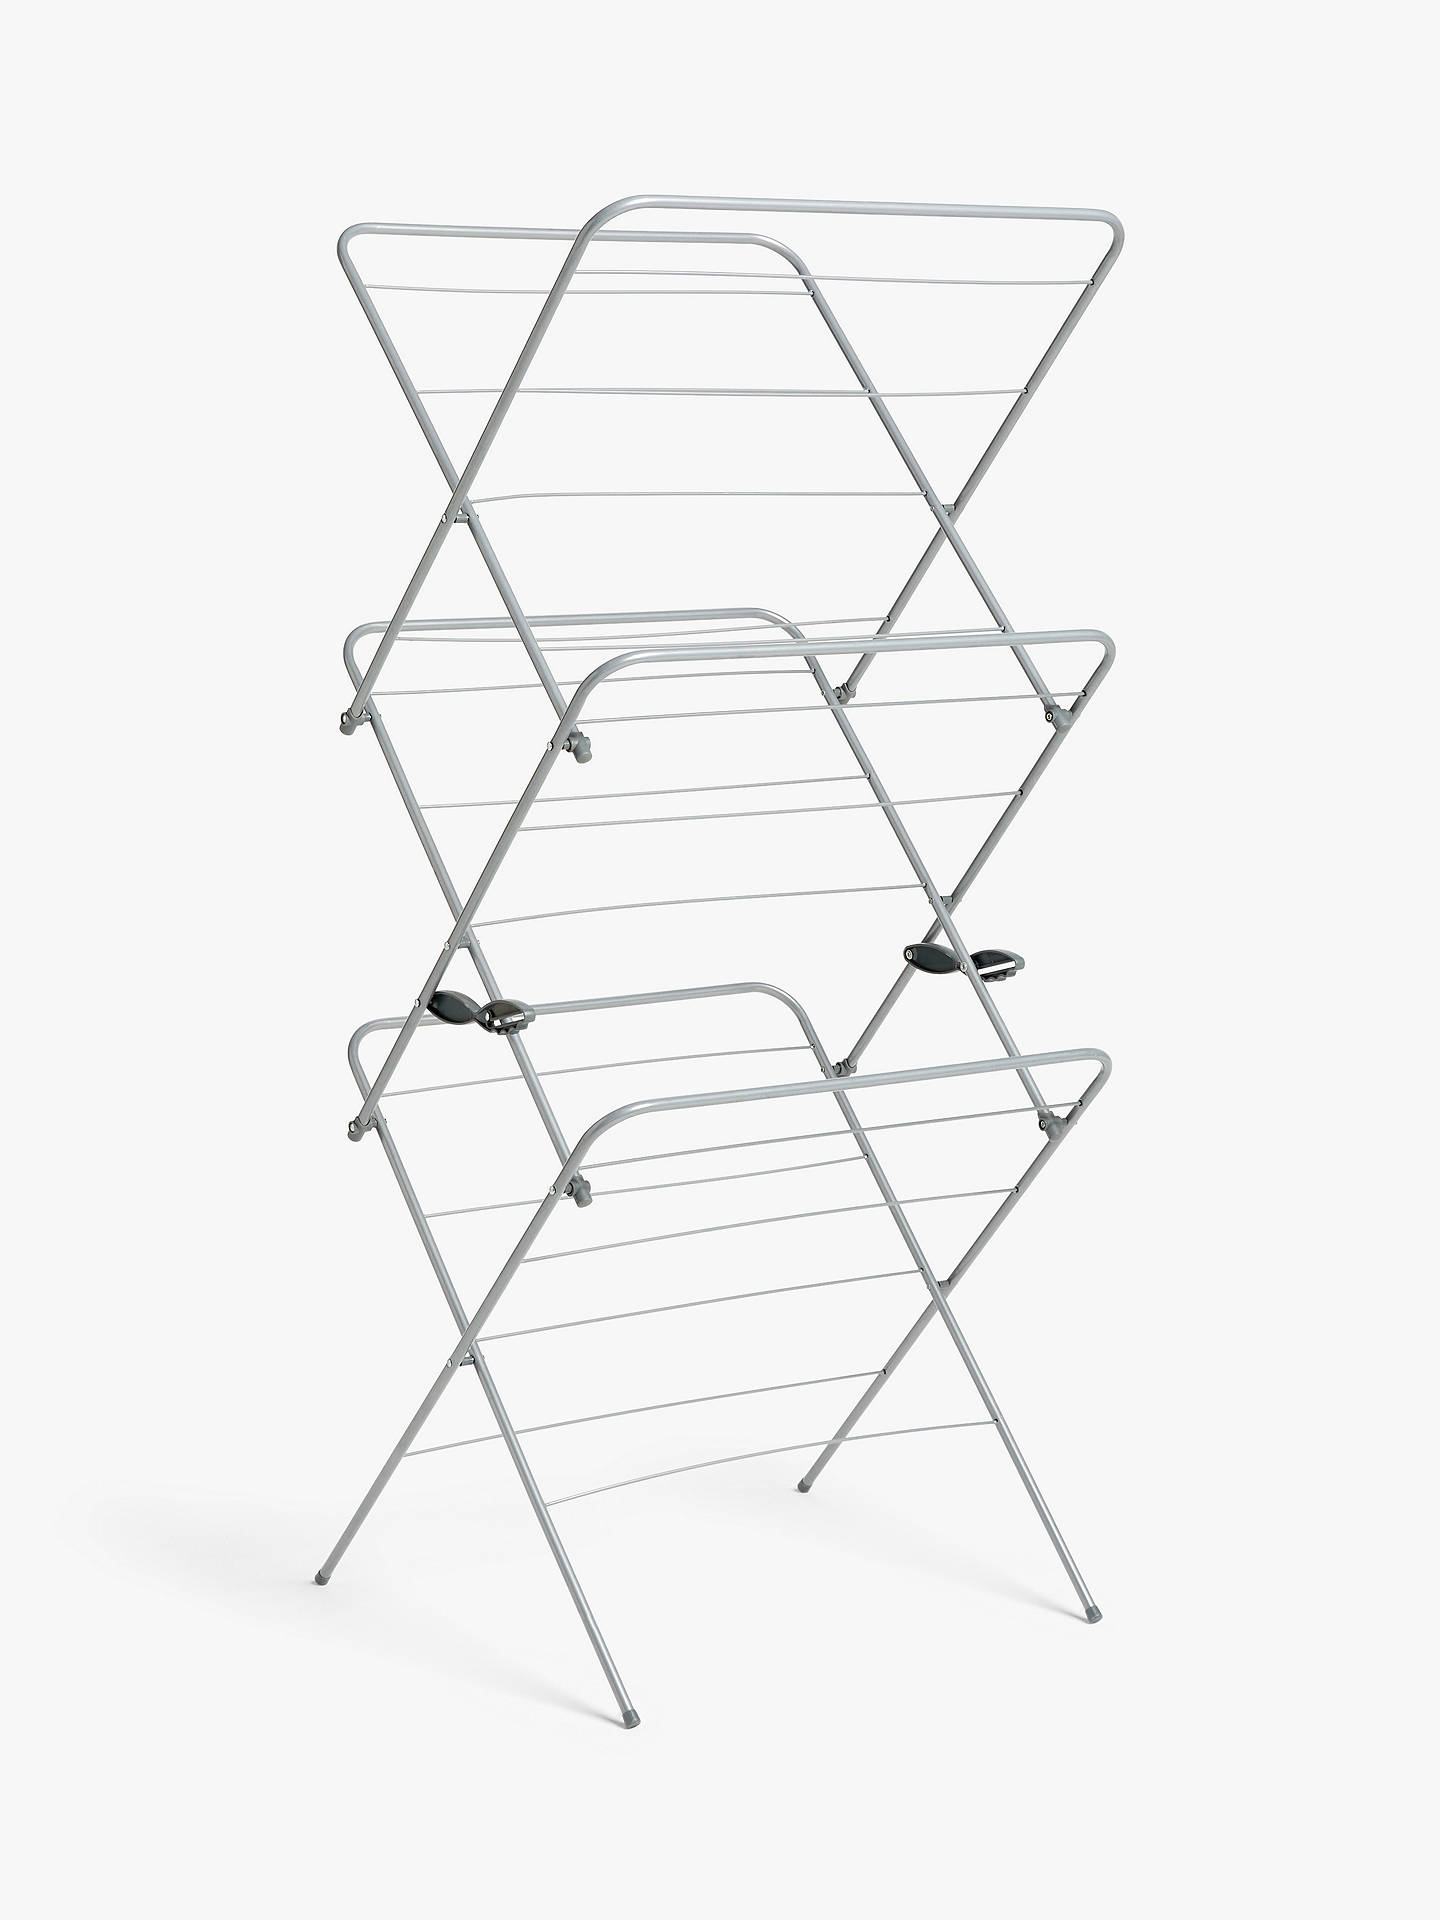 BuyJohn Lewis & Partners Standard 3 Tier Clothes Airer Online at johnlewis.com